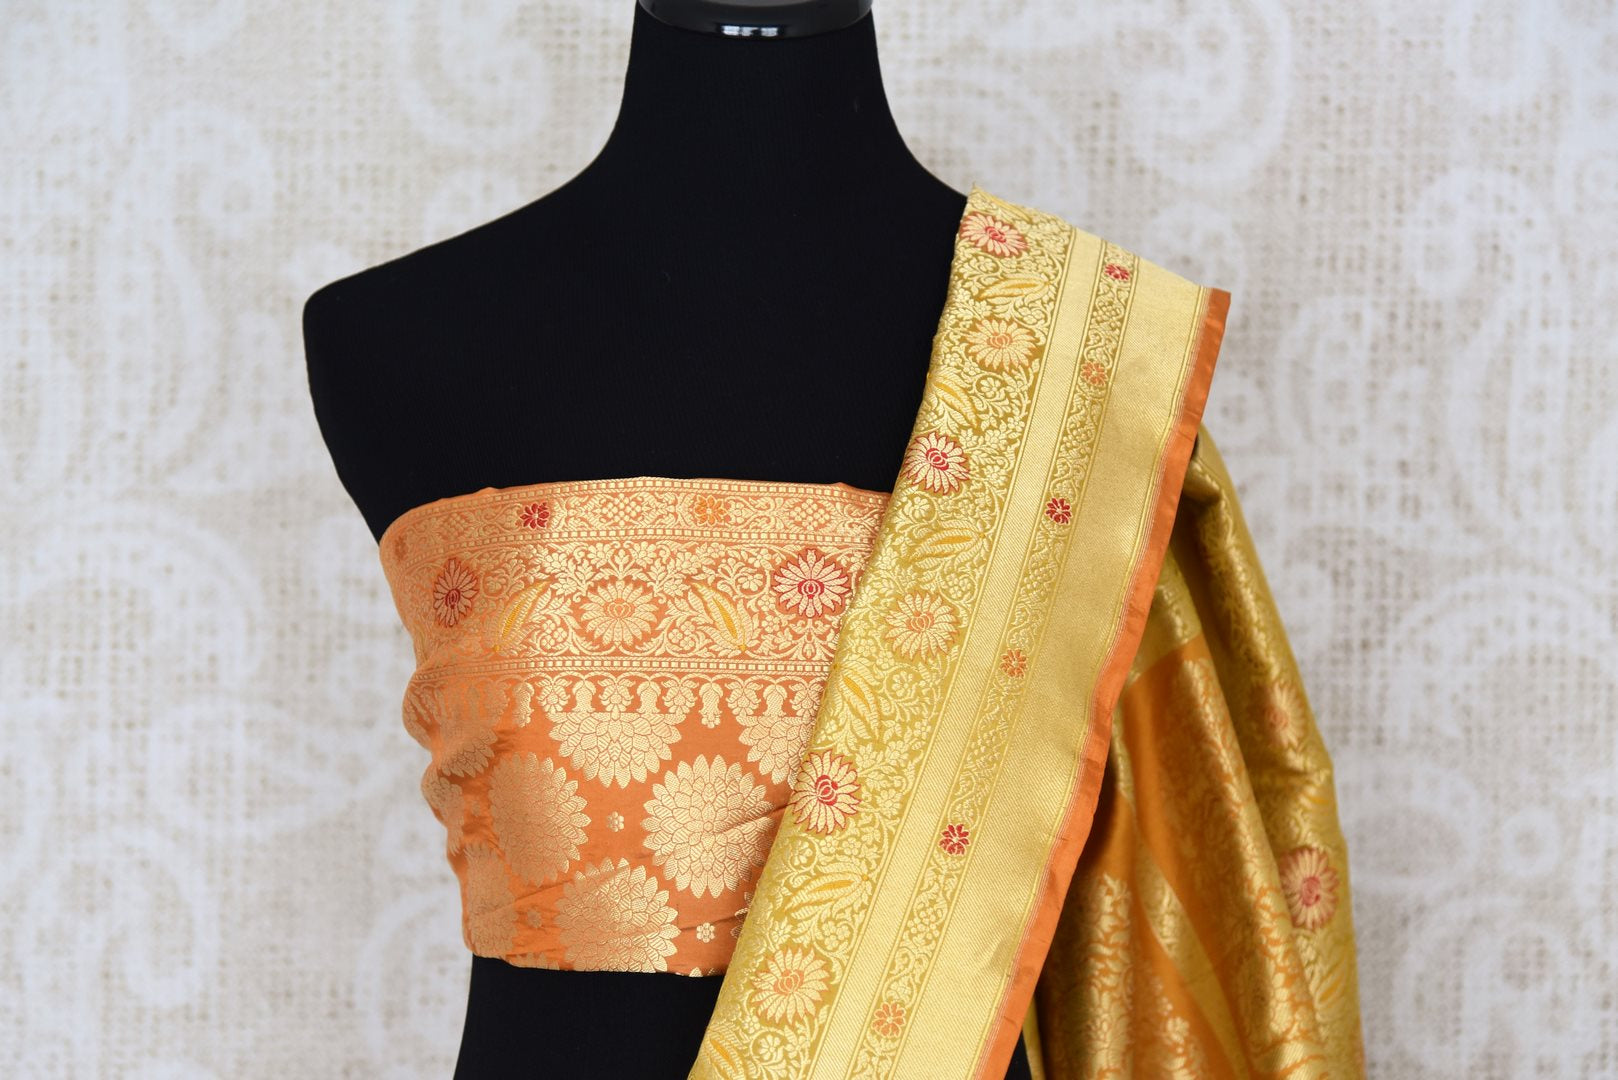 Rich gold Banarasi silk saree buy online in USA with zari buta and border. The saree is sure to bring splendor to your Indian wedding look. If you are looking for Indian designer silk sarees, Banarasi sarees in USA, then Pure Elegance clothing store is your one-stop solution, shop now.-blouse pallu